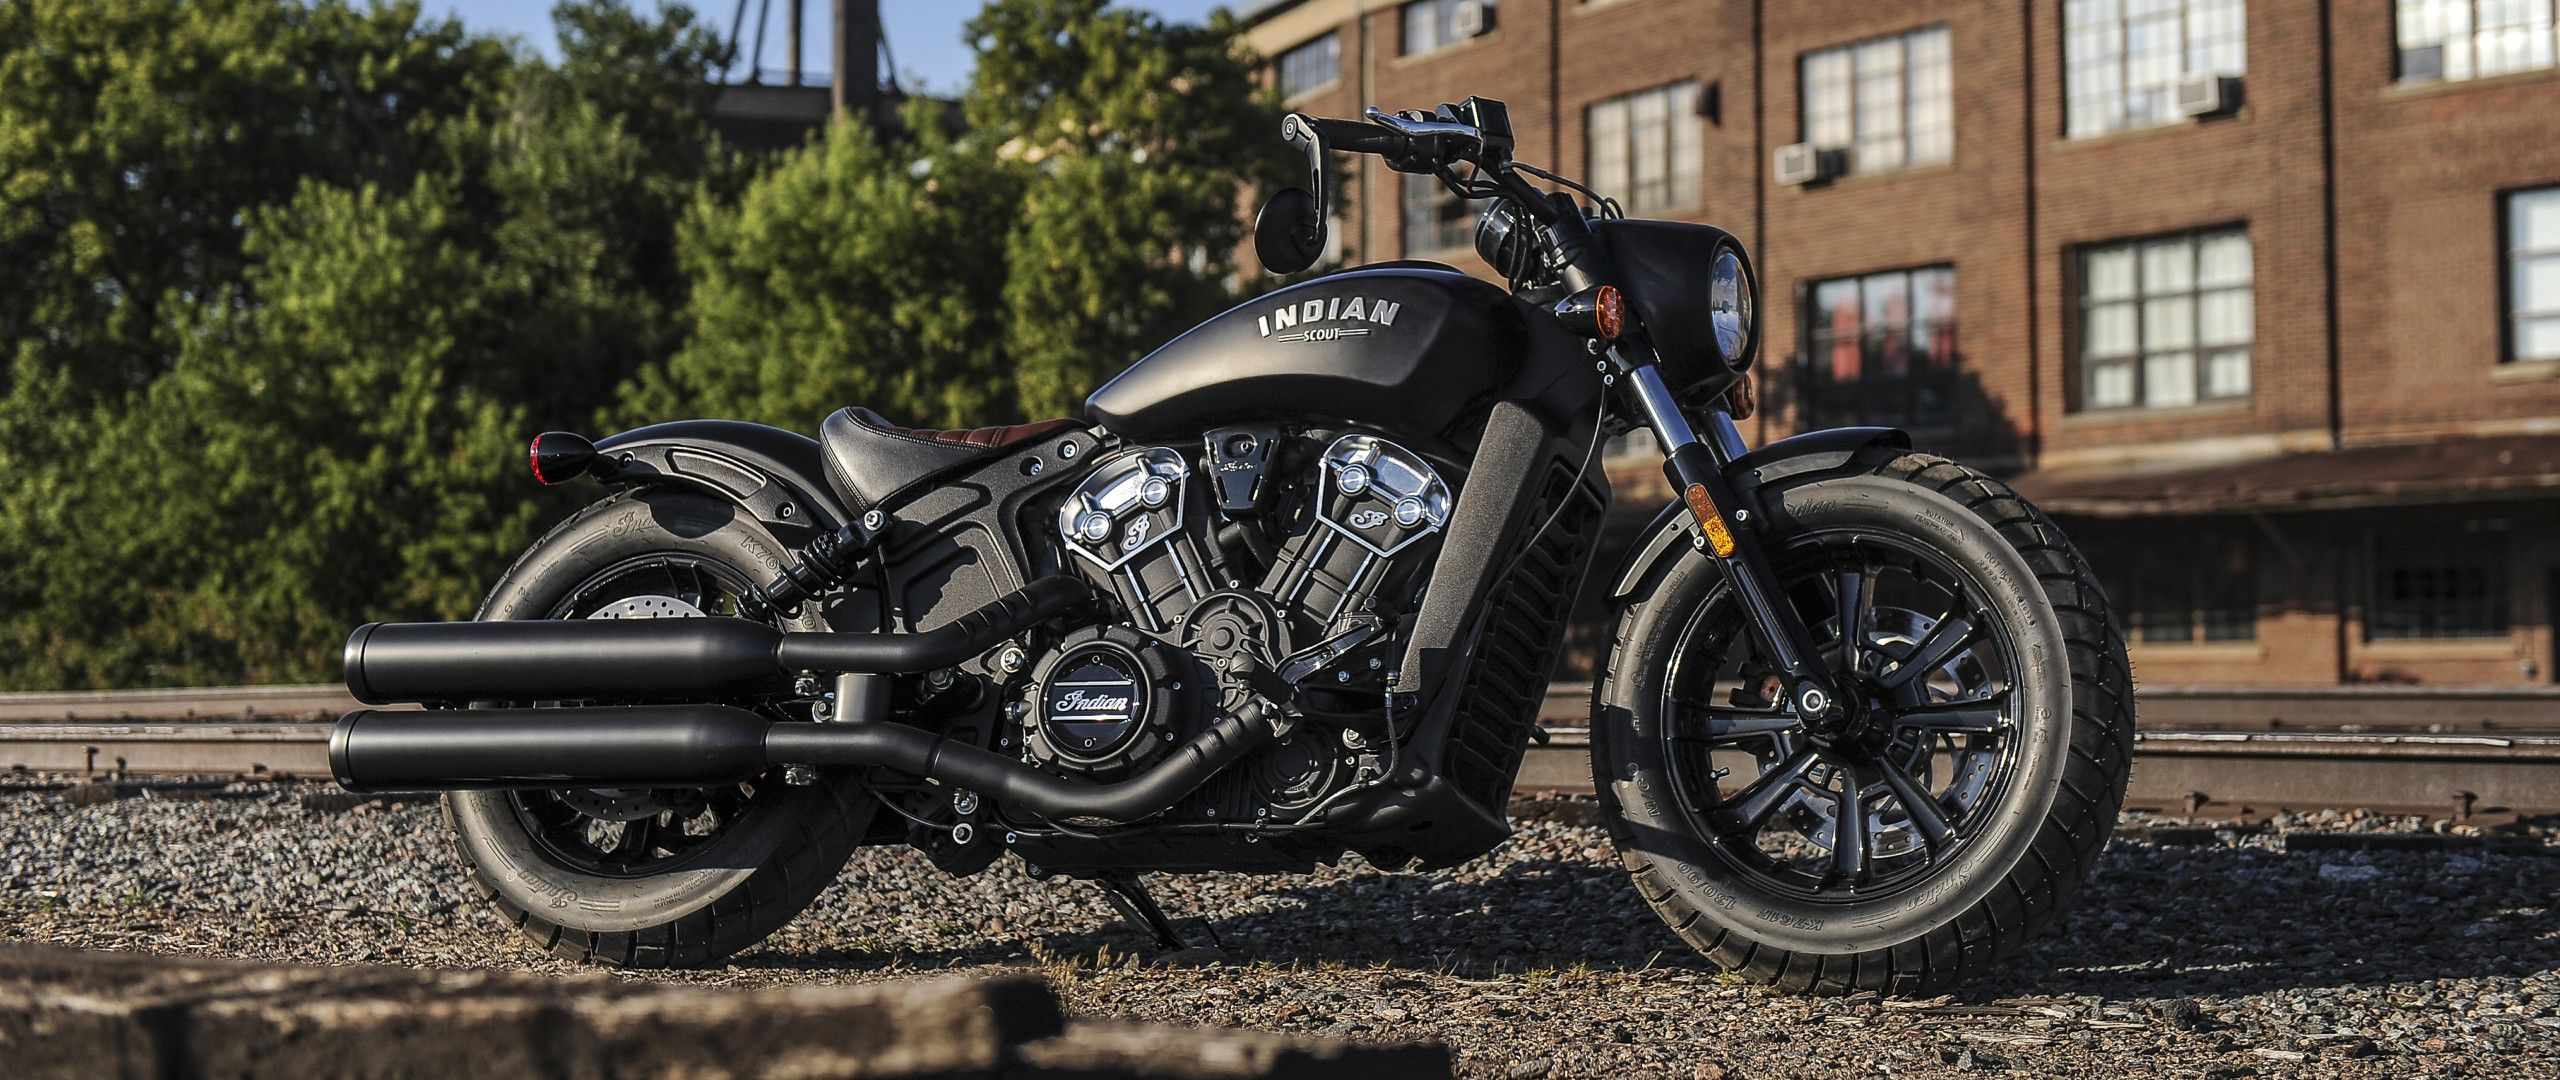 Indian Motorcycles Wallpapers   Top Indian Motorcycles 2560x1080